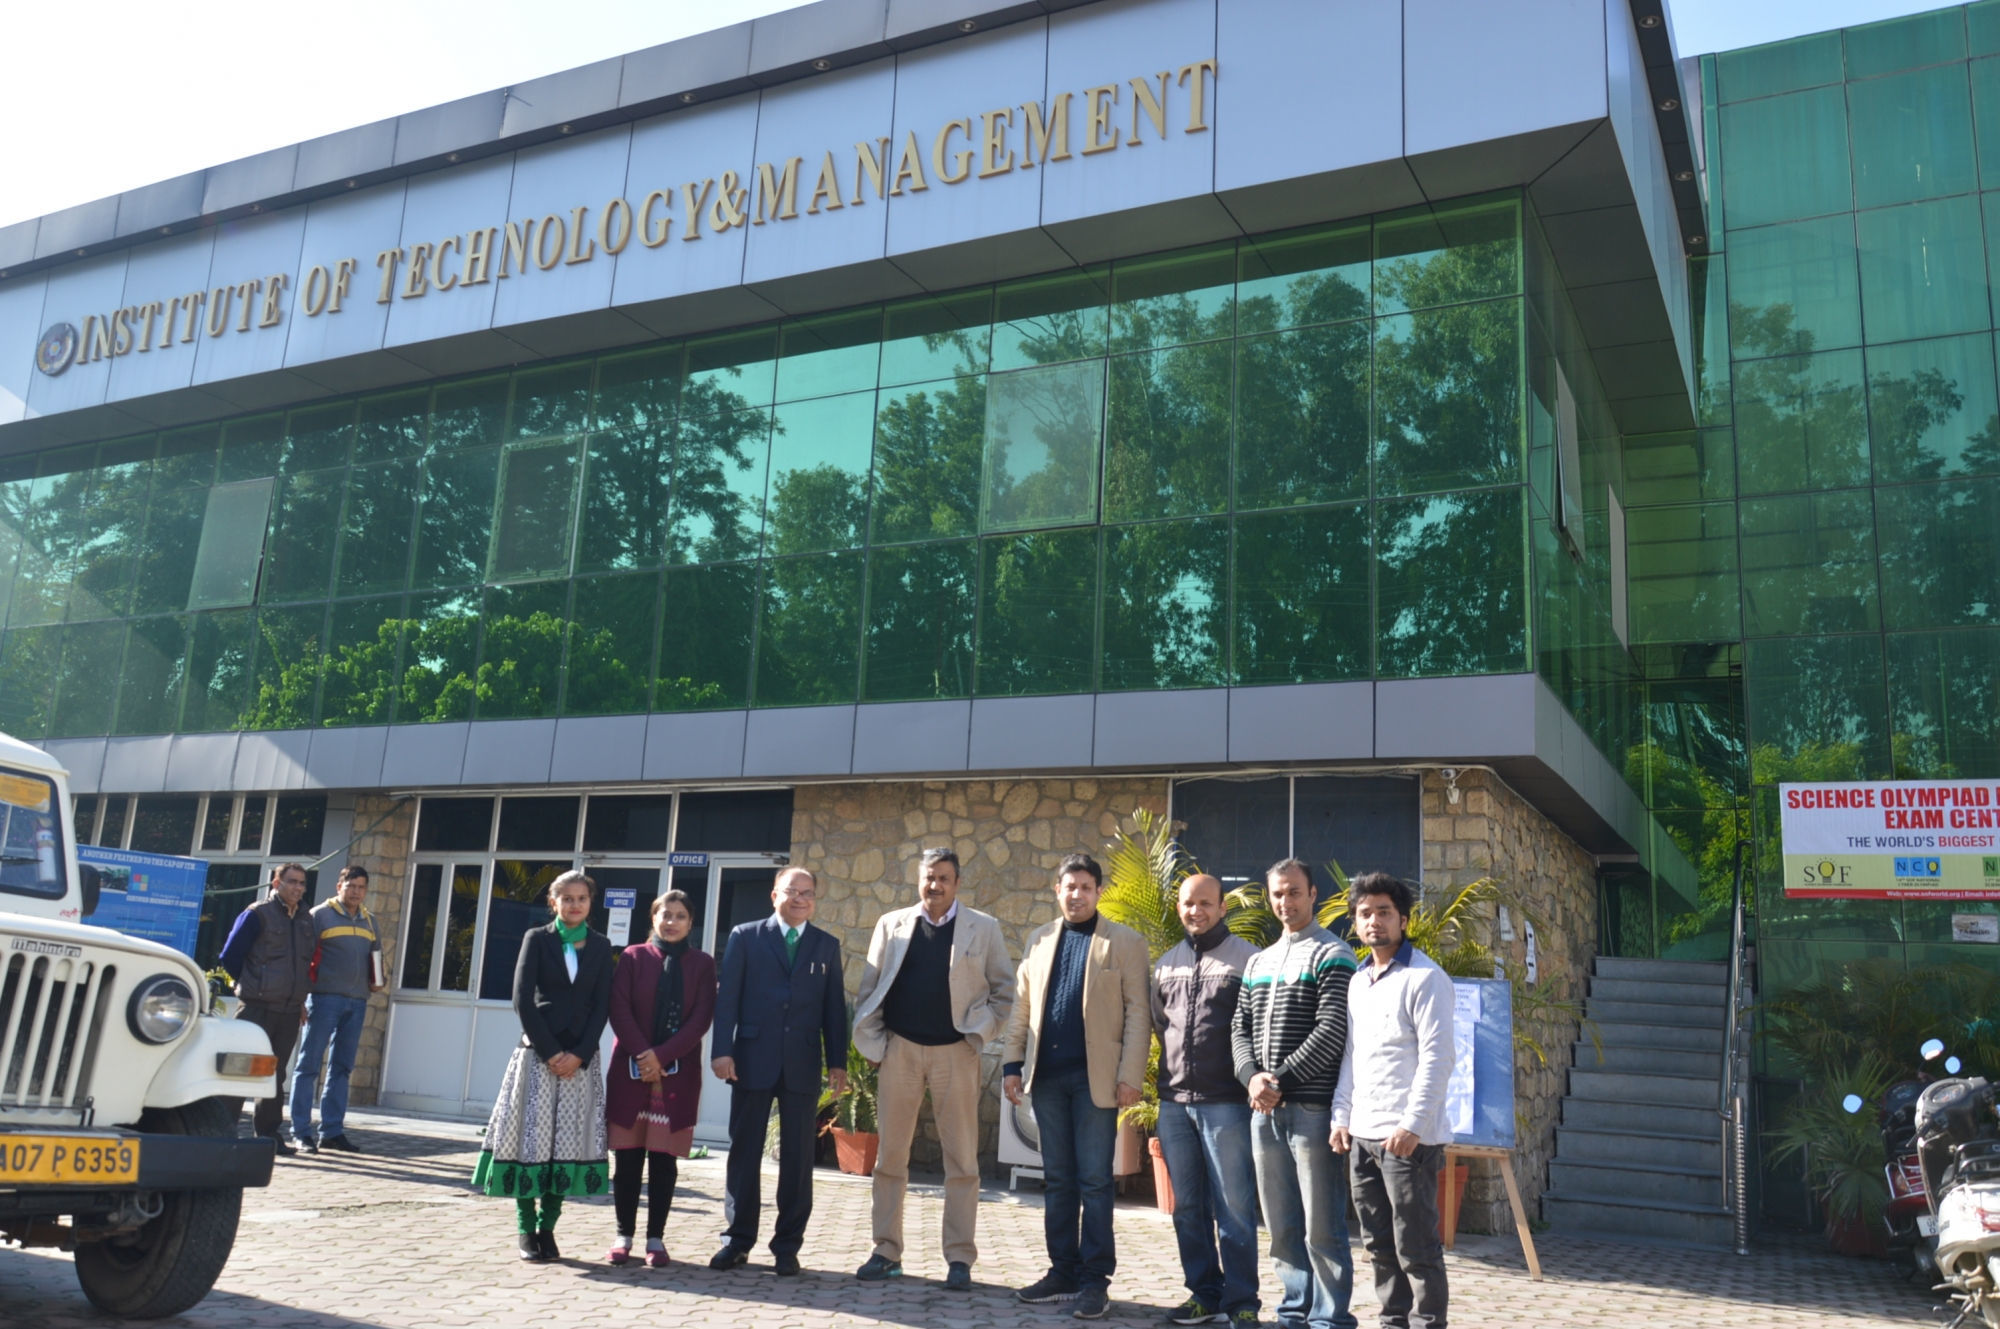 Institute of Technology & Management